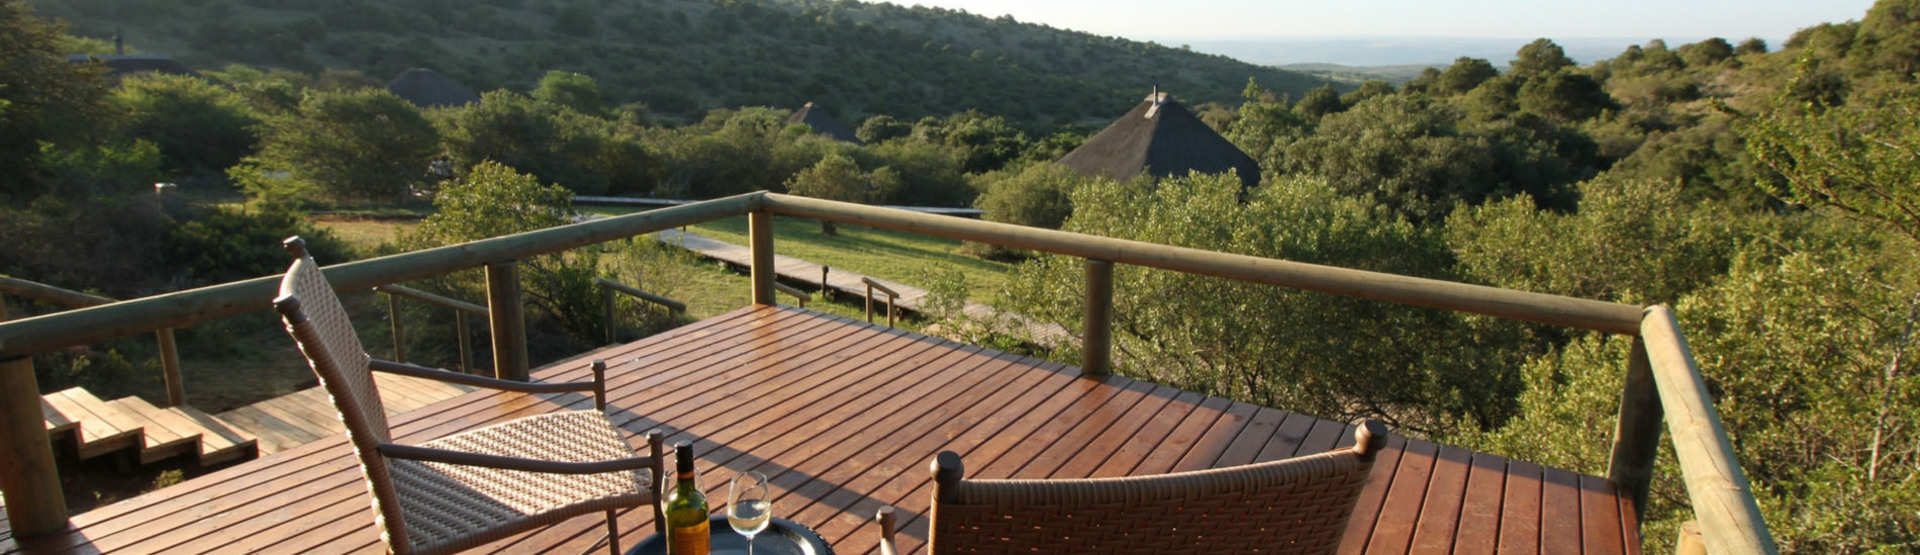 Hlosi Game Lodge Amakhala Game Reserve Accommodation Tent View